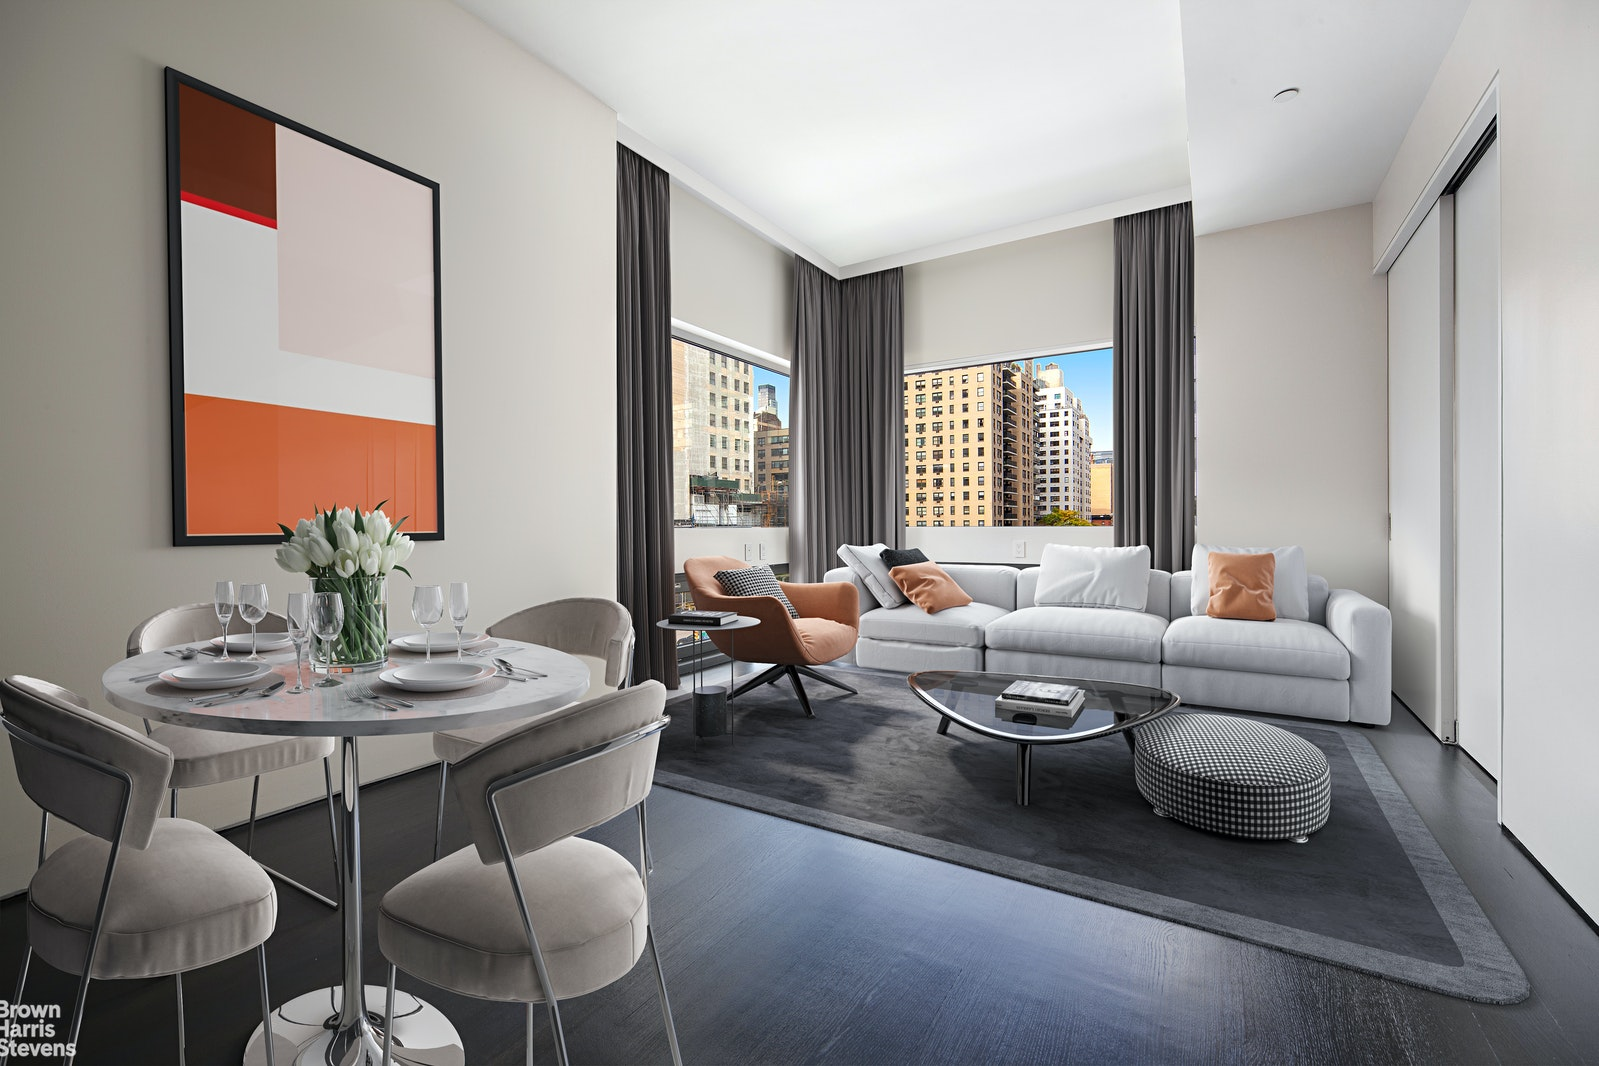 Apartment for sale at 123 Third Avenue, Apt 4A